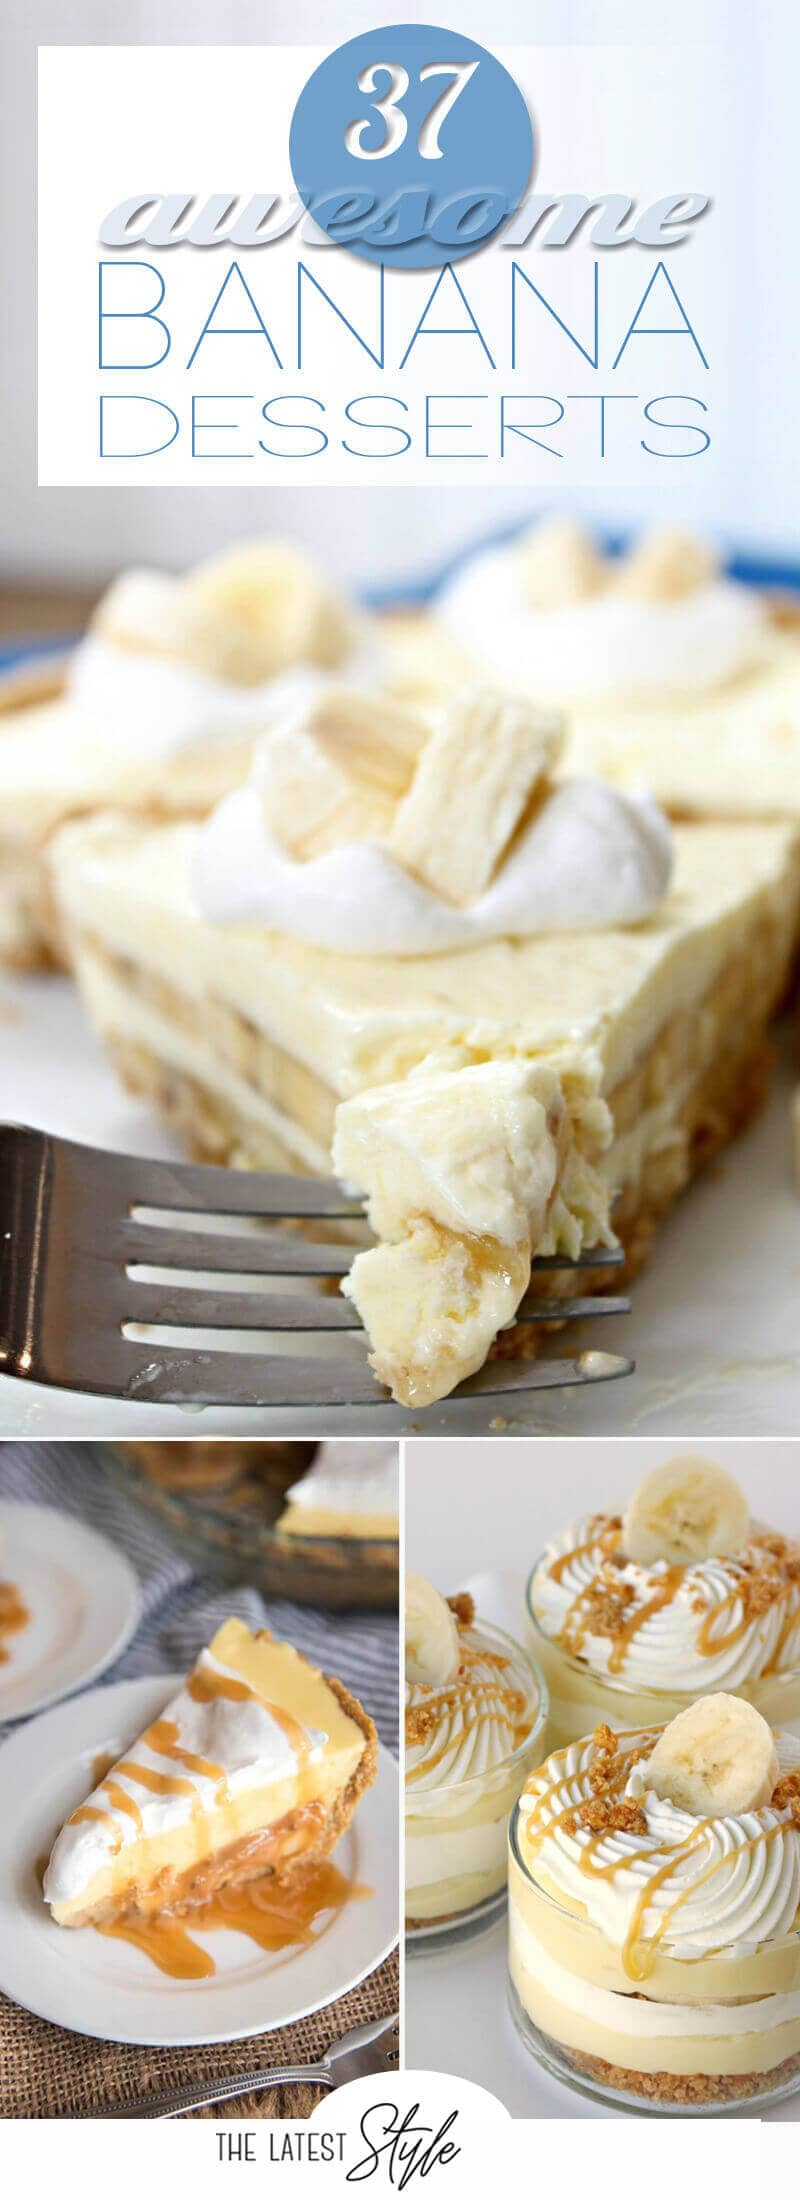 37 Awesome Banana Dessert Recipes You'll Go Crazy For